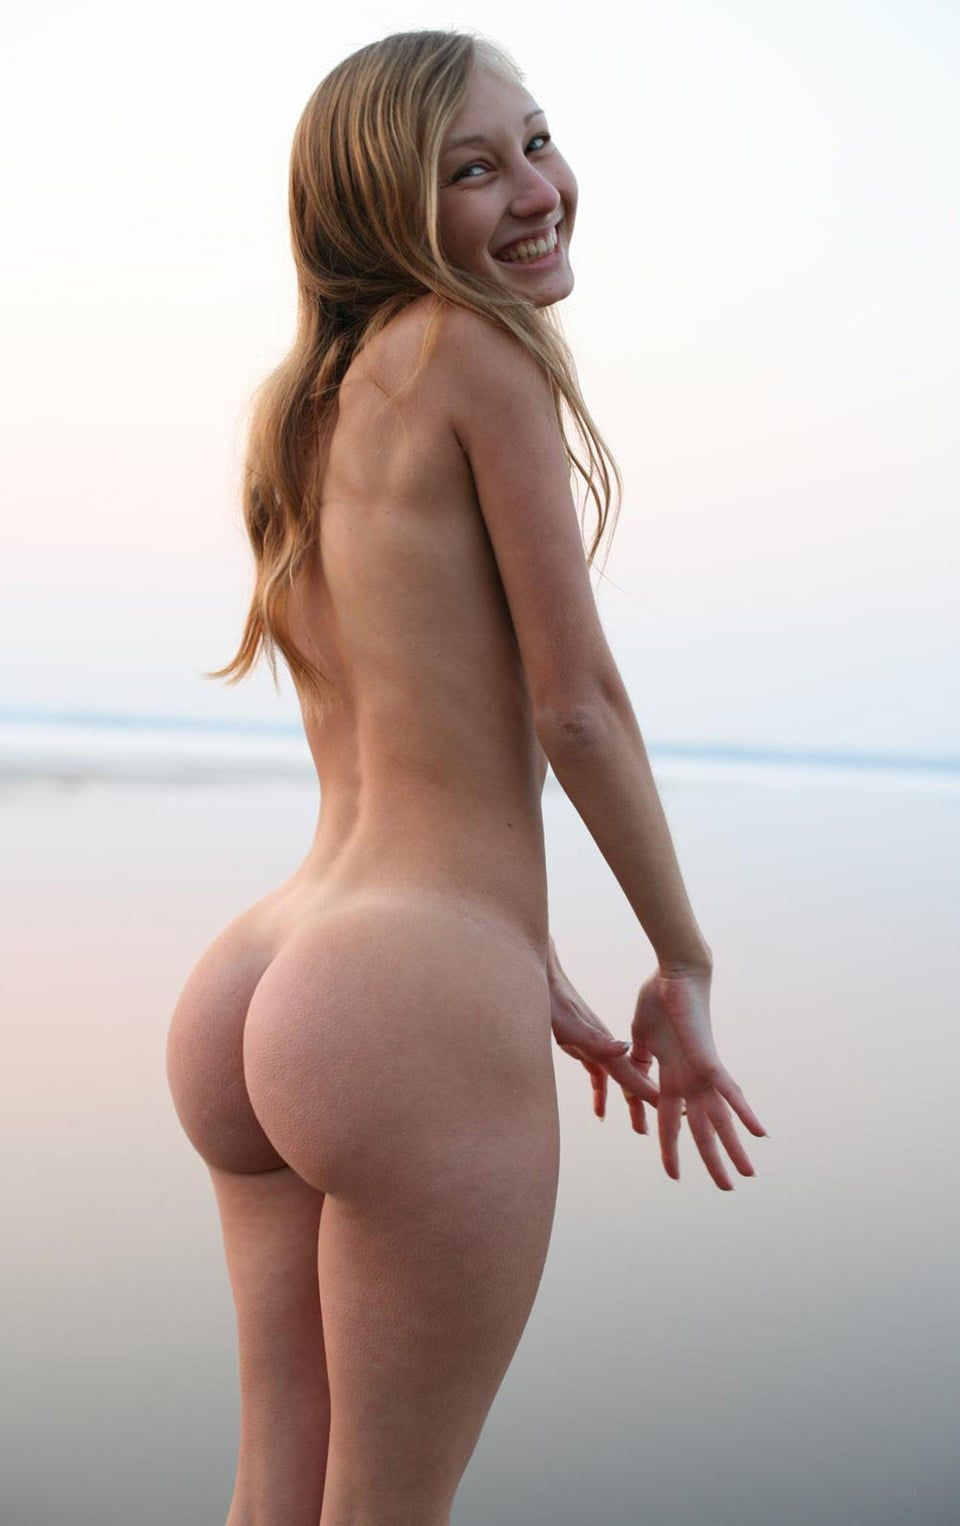 Remarkable nude skinny girls with asses really. happens